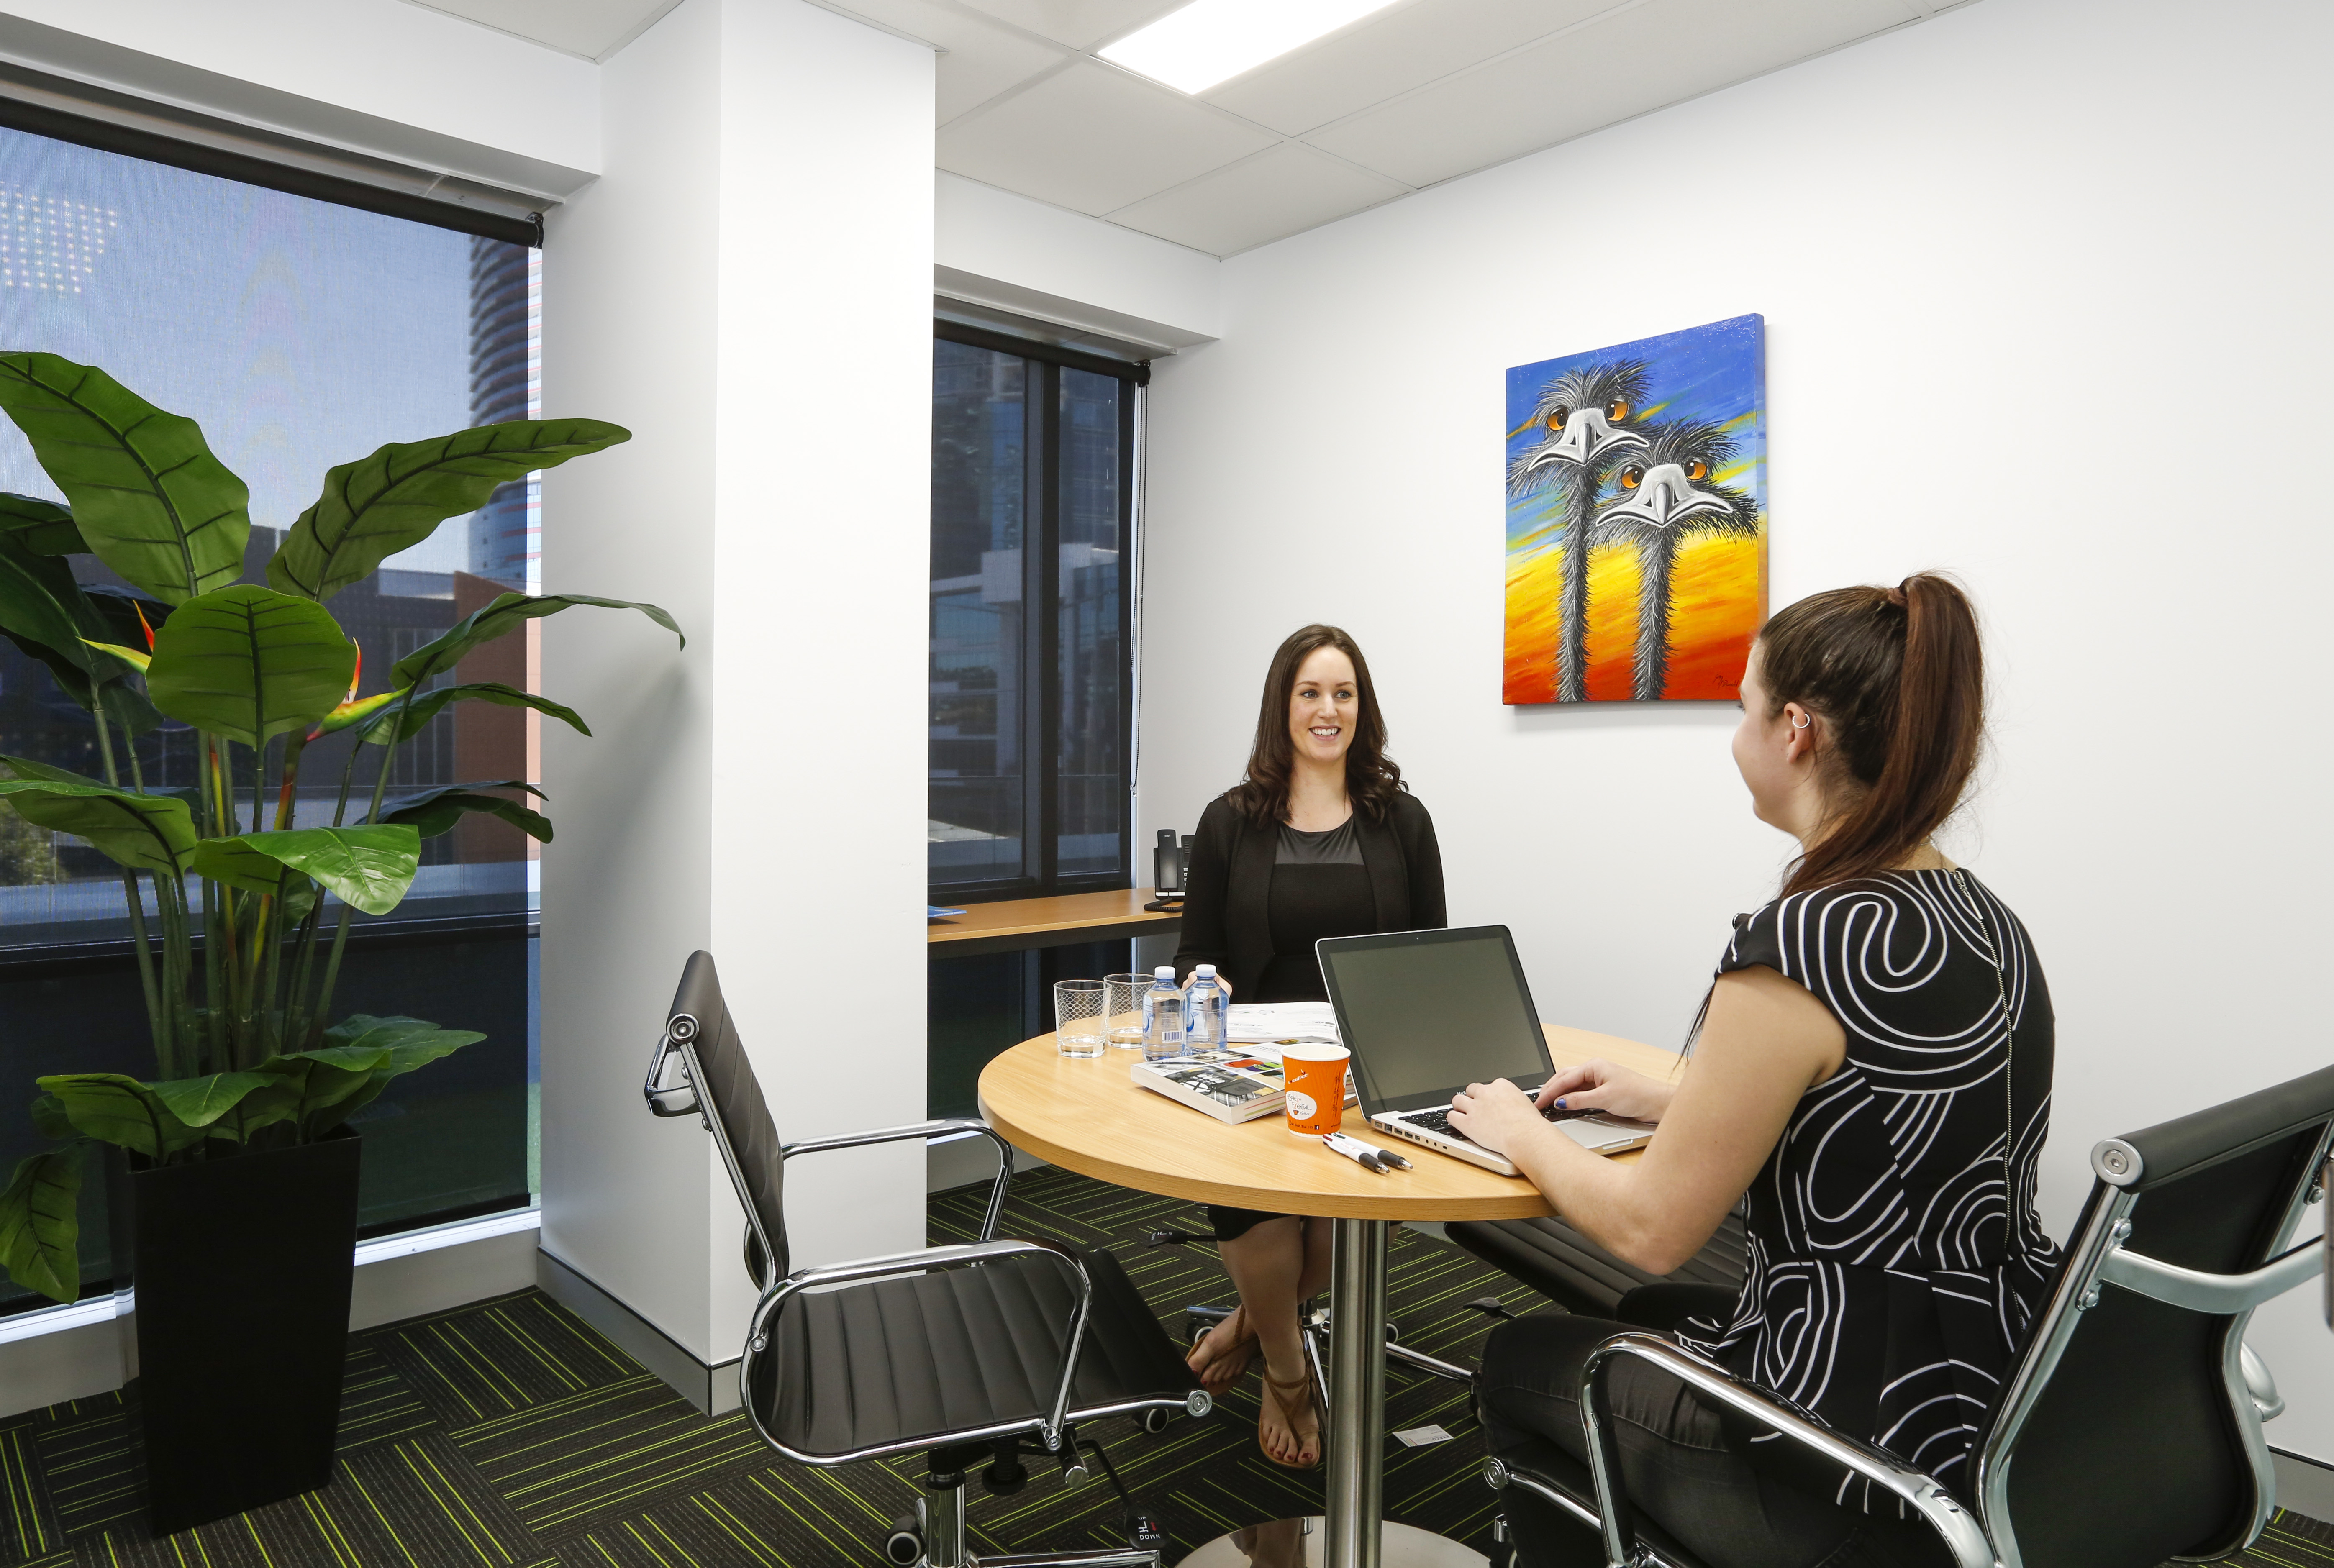 Meeting rooms are an essential element of coworking spaces - blog post image